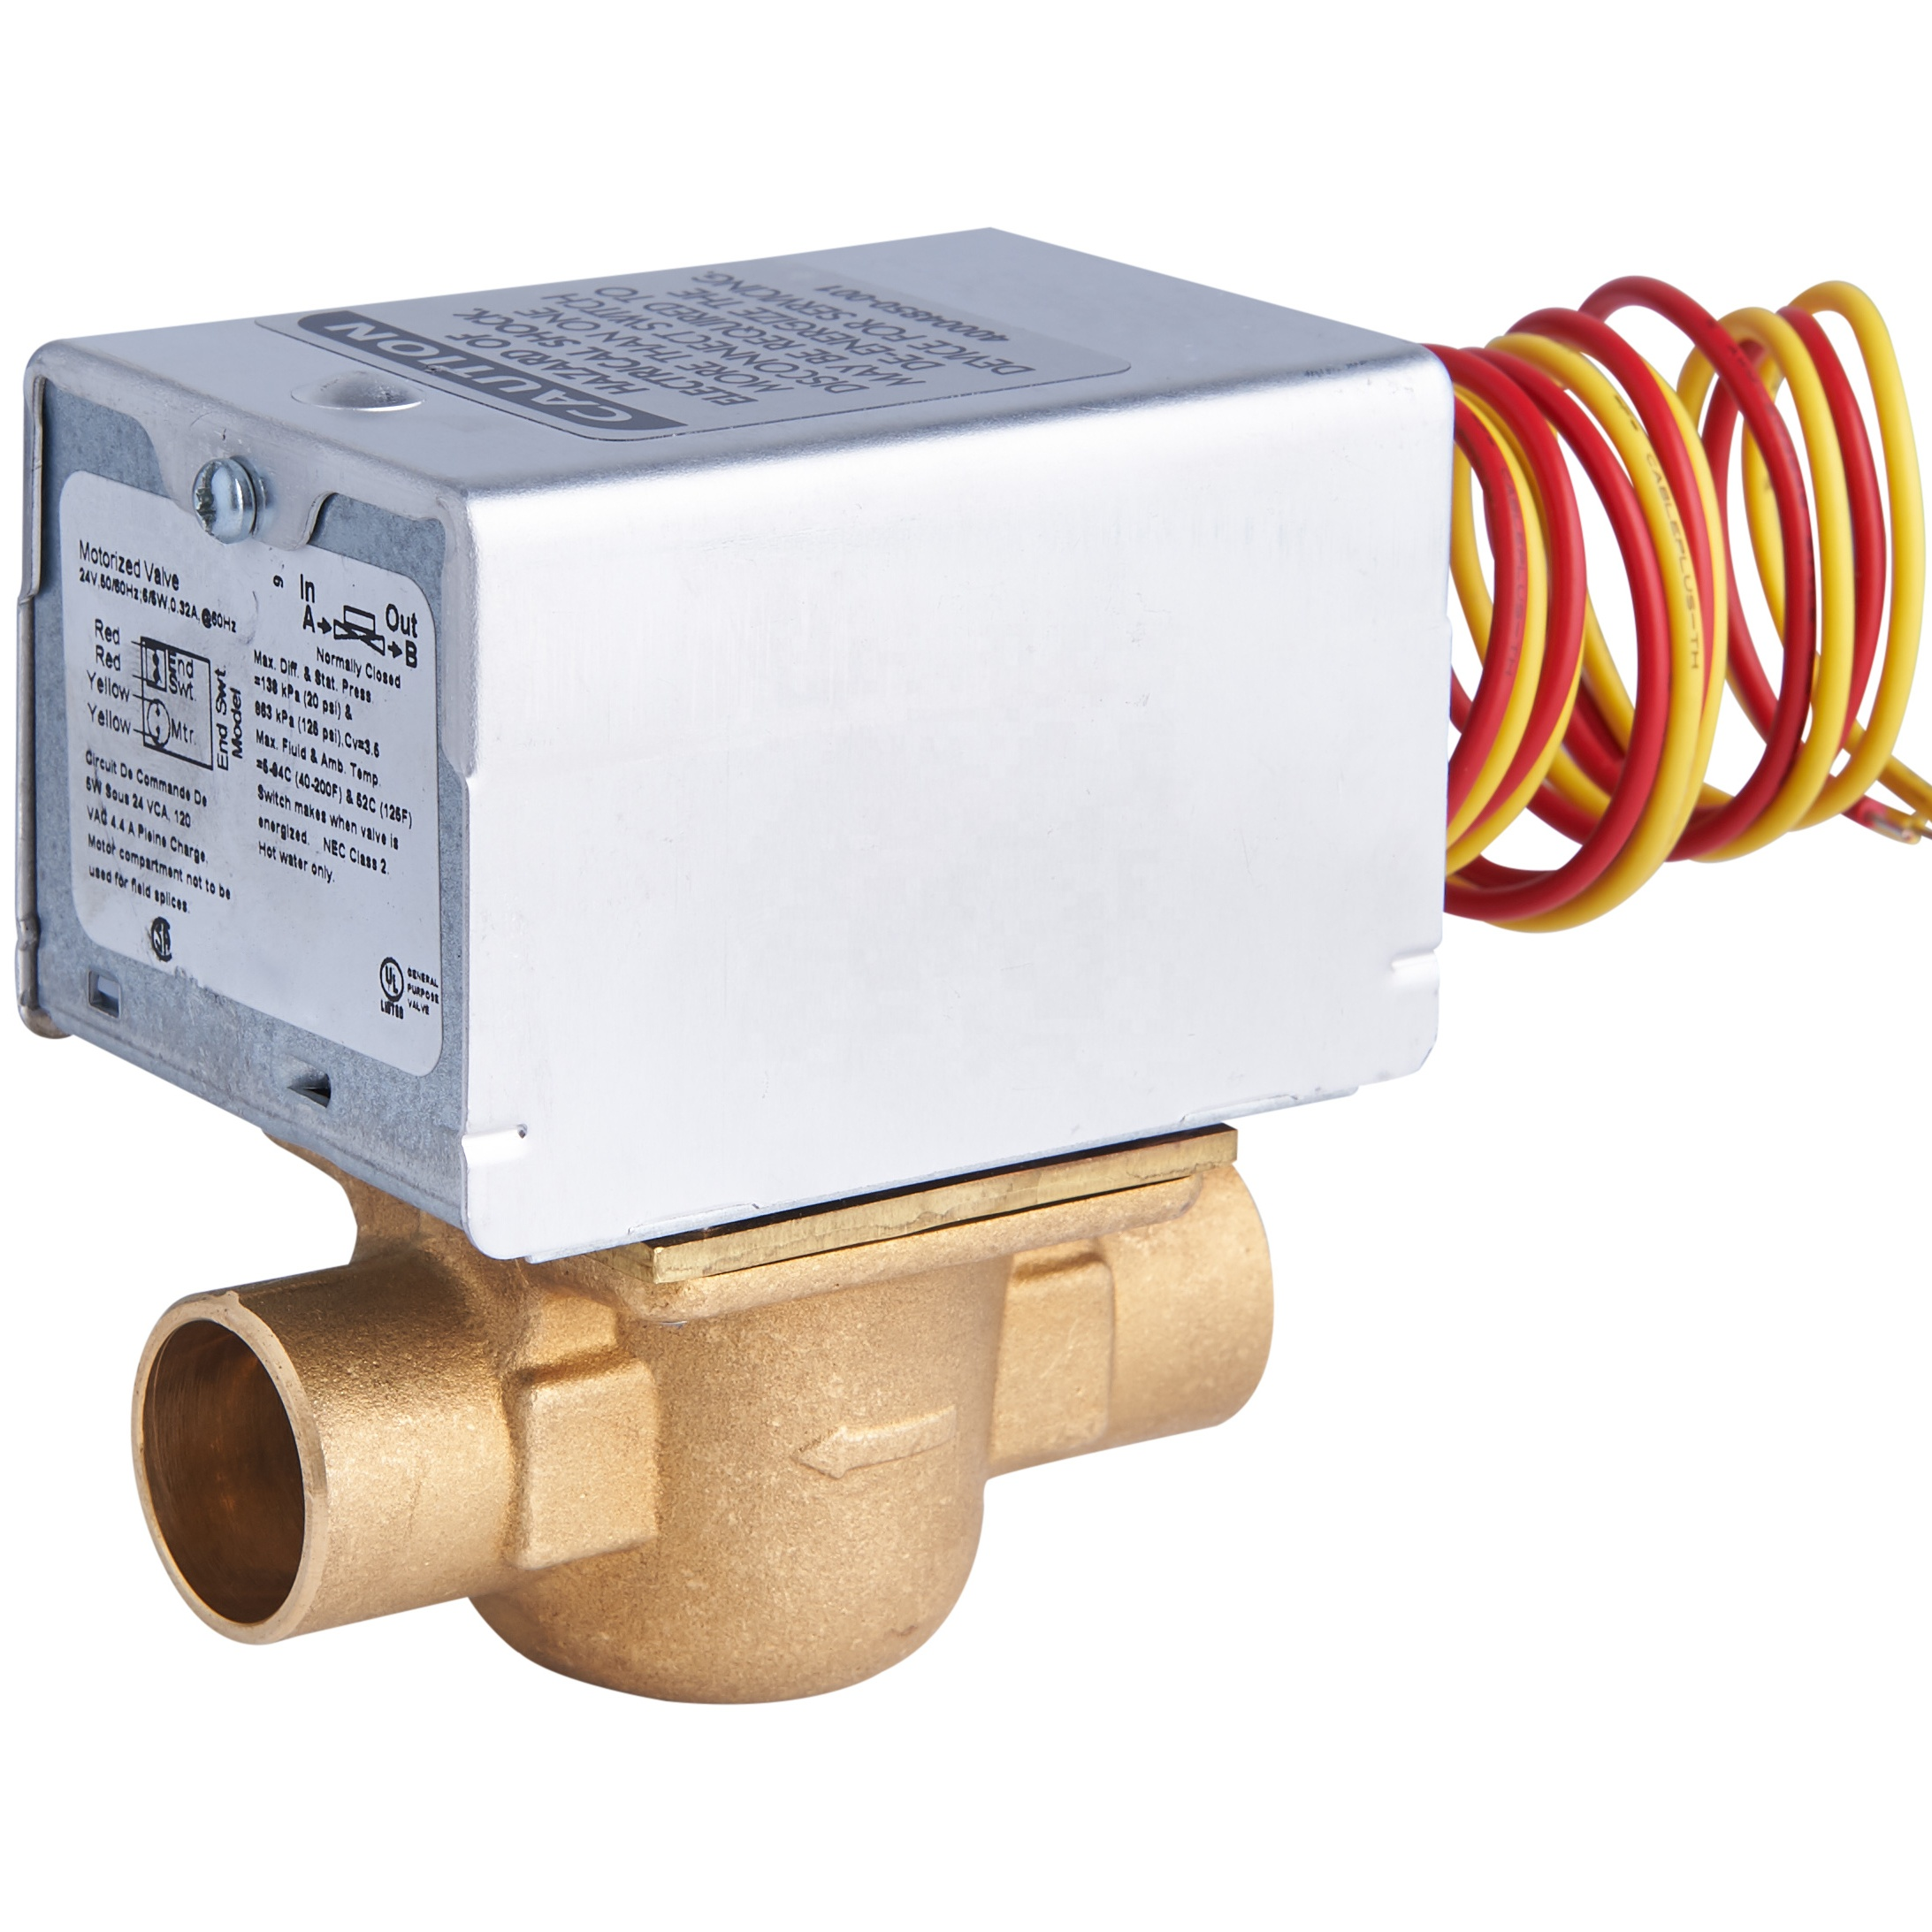 Honeywell Boiler Zone Valves Wiring